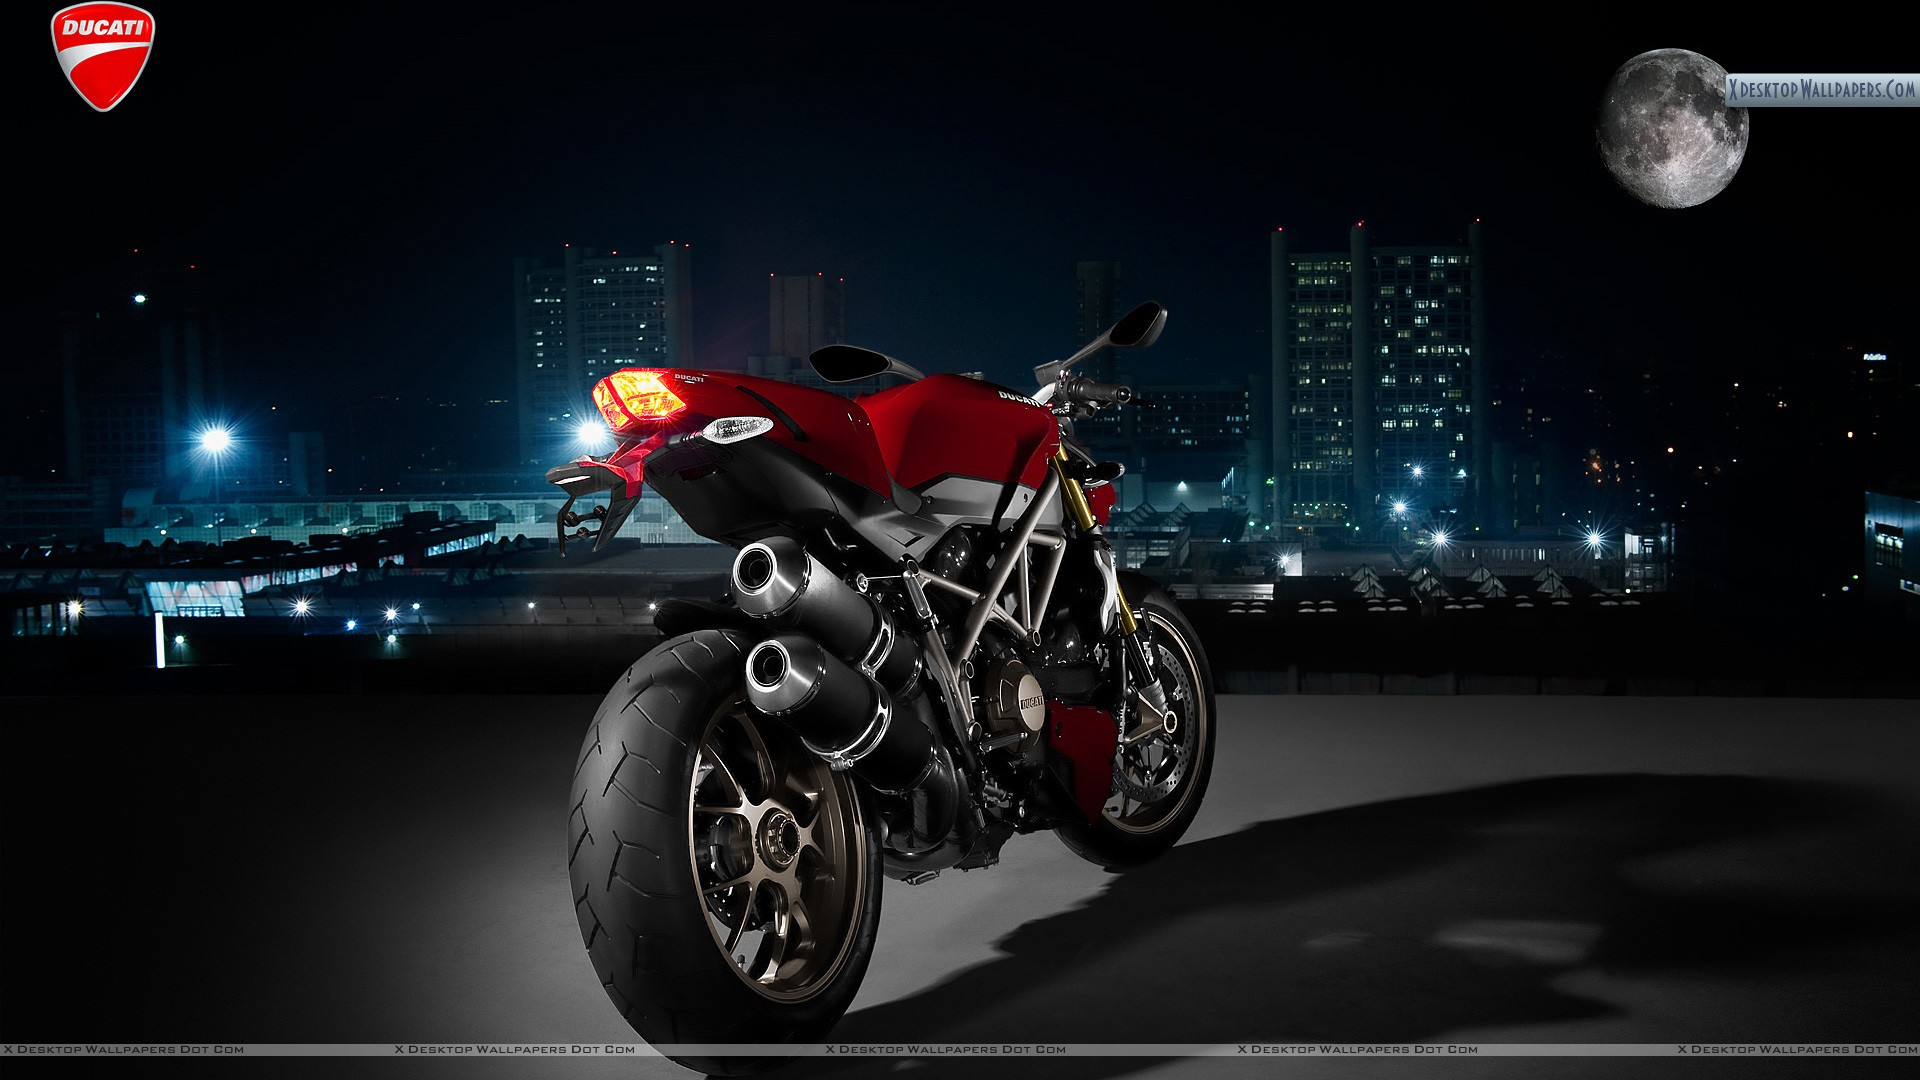 bikes wallpapers, photos & images in hd